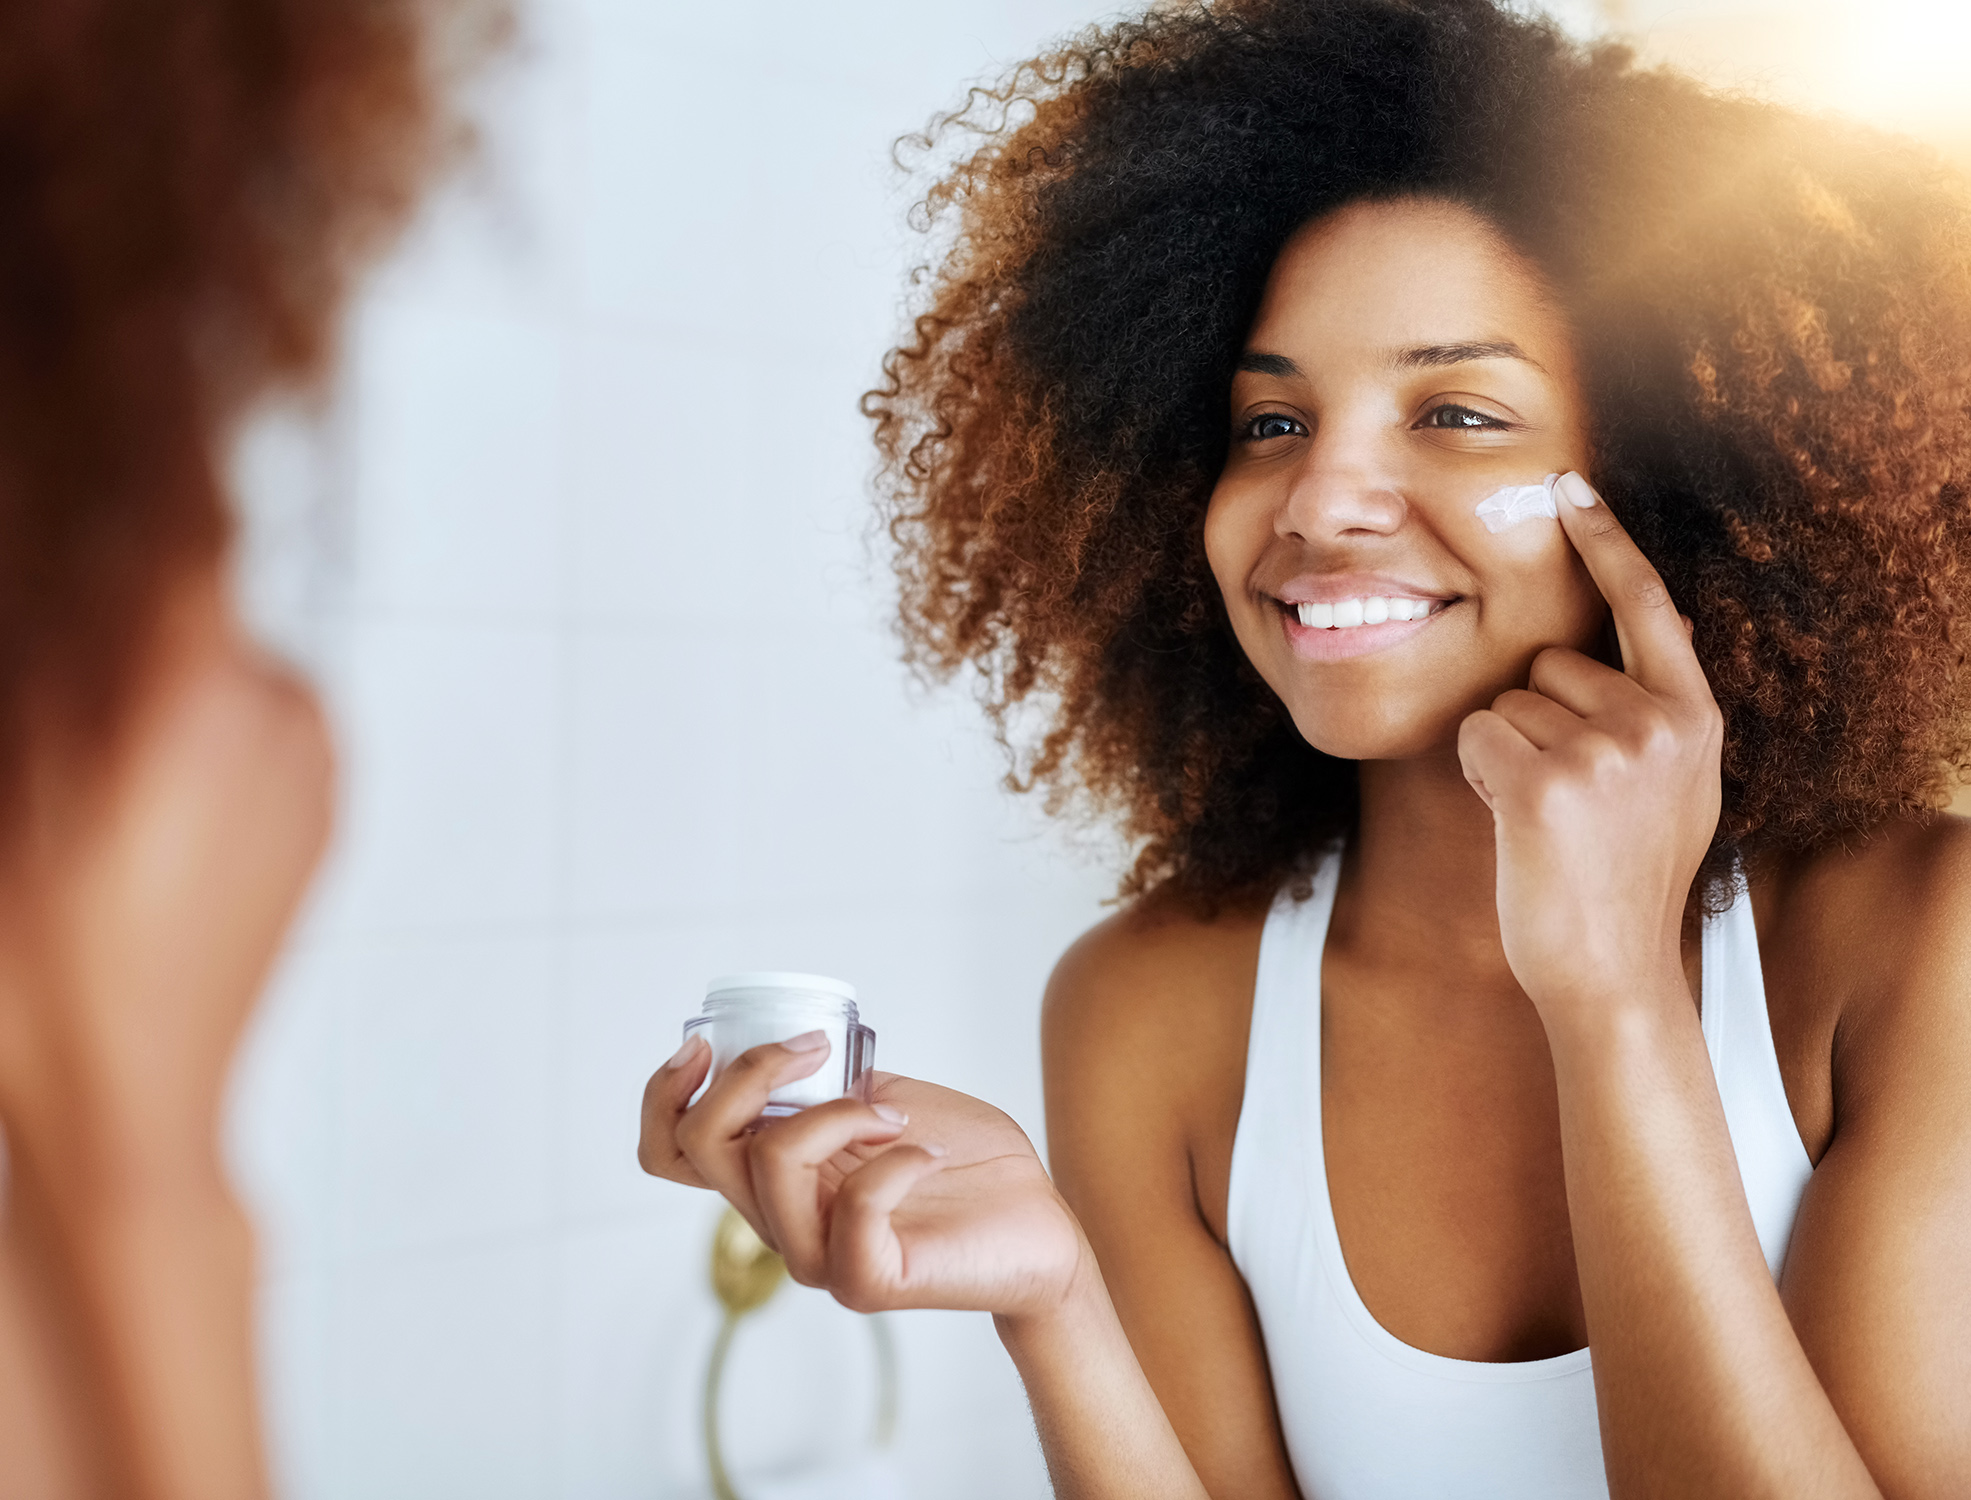 young woman applying moisturizer to her face in front of the mirror